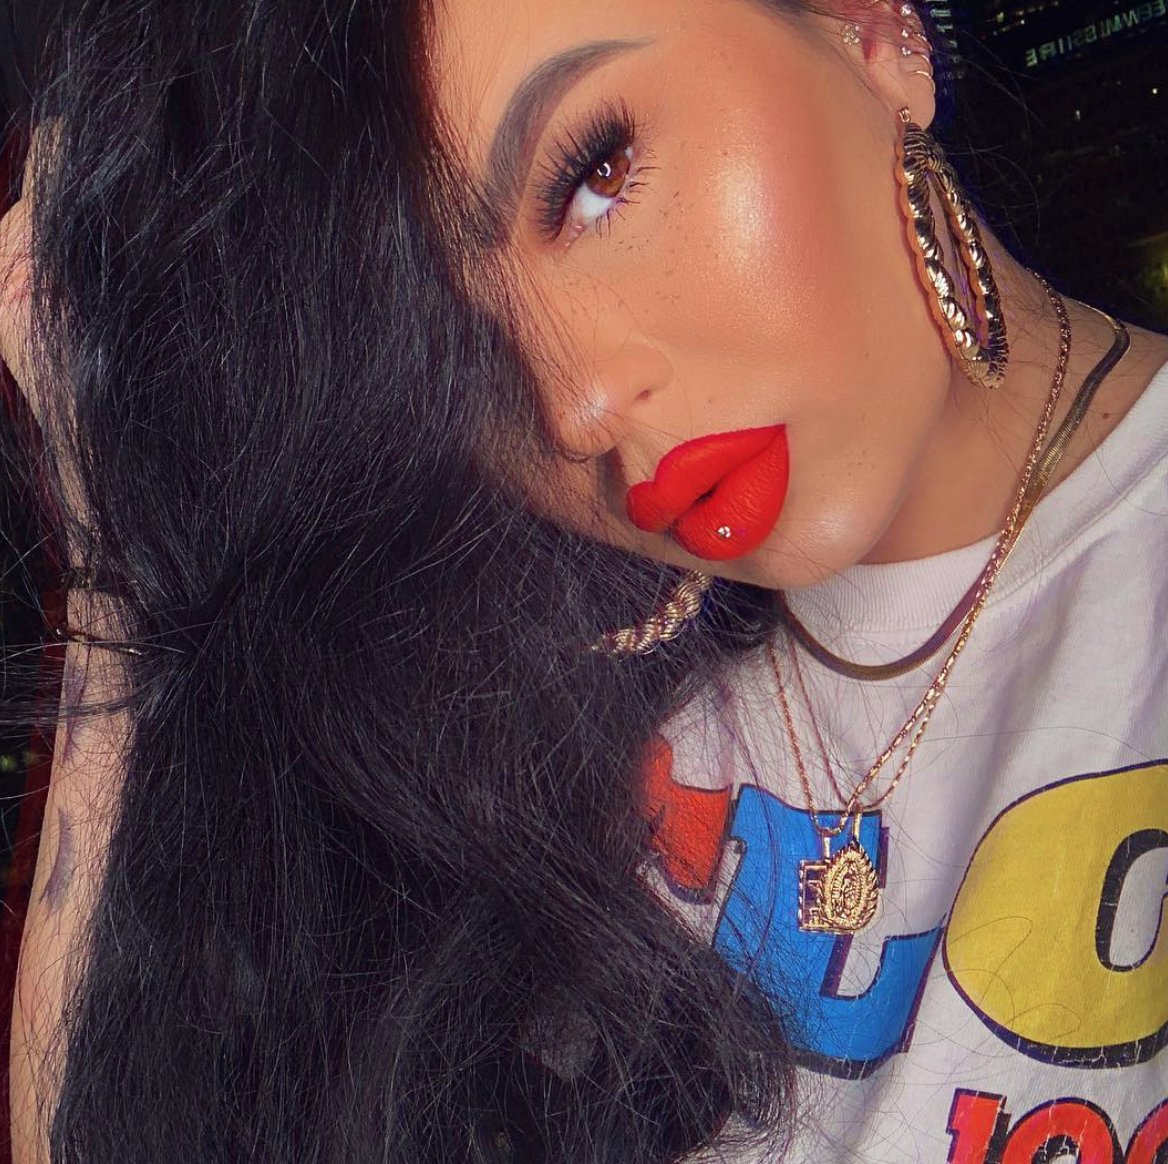 Sometimes all you need is a little MALICE 🙌🏽🔥 @ourfazinali wearing Everlasting Liquid Lipstick in Malice ❤️